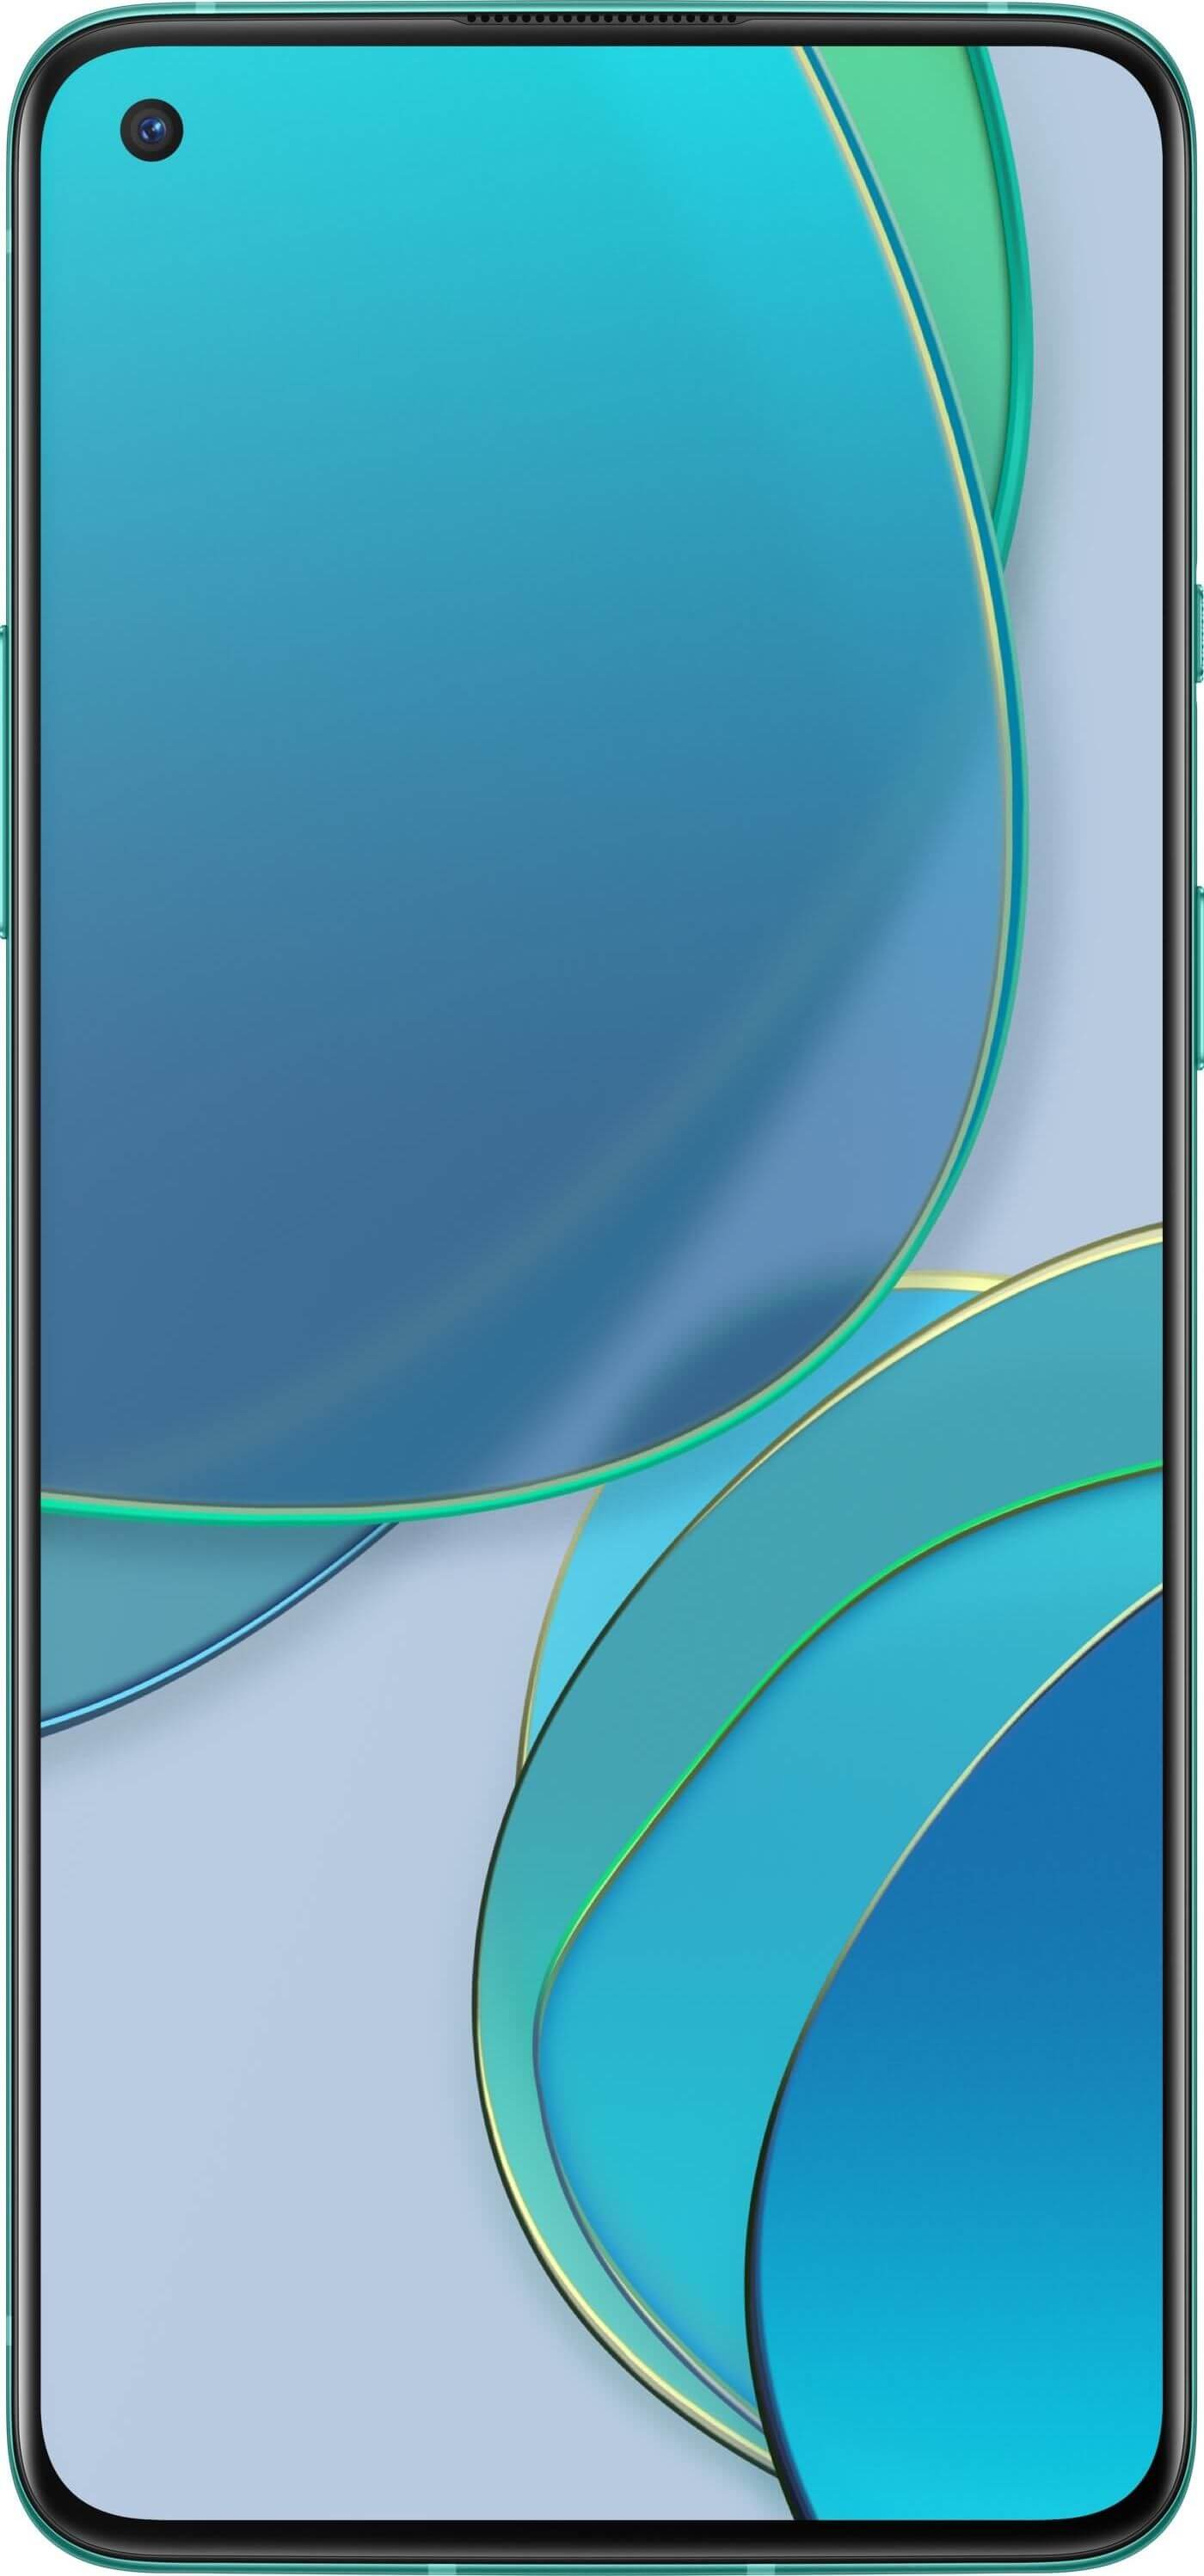 OnePlus 8T color